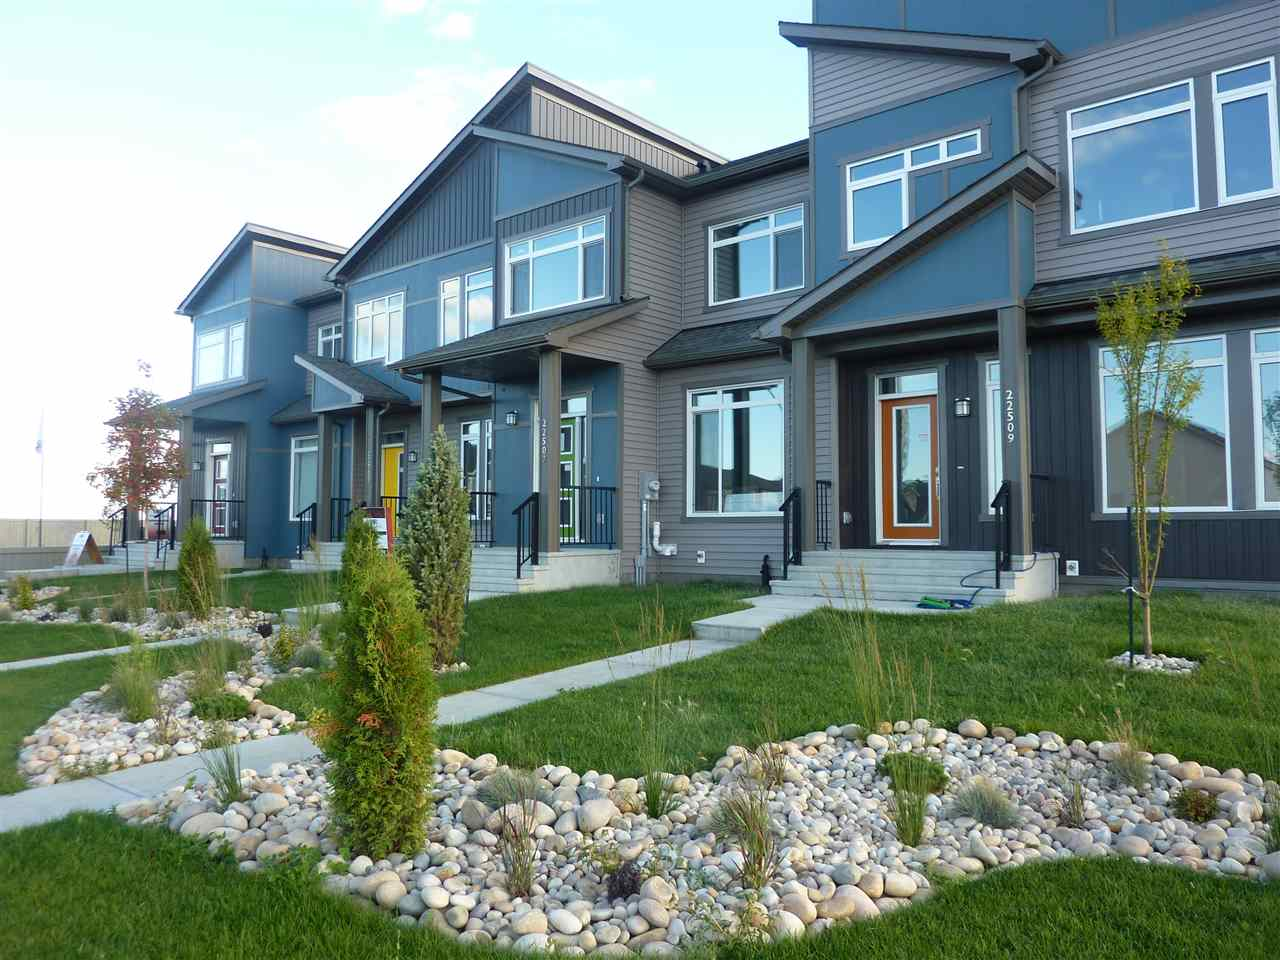 MLS® listing #E4173761 for sale located at 22505 93 Avenue NW